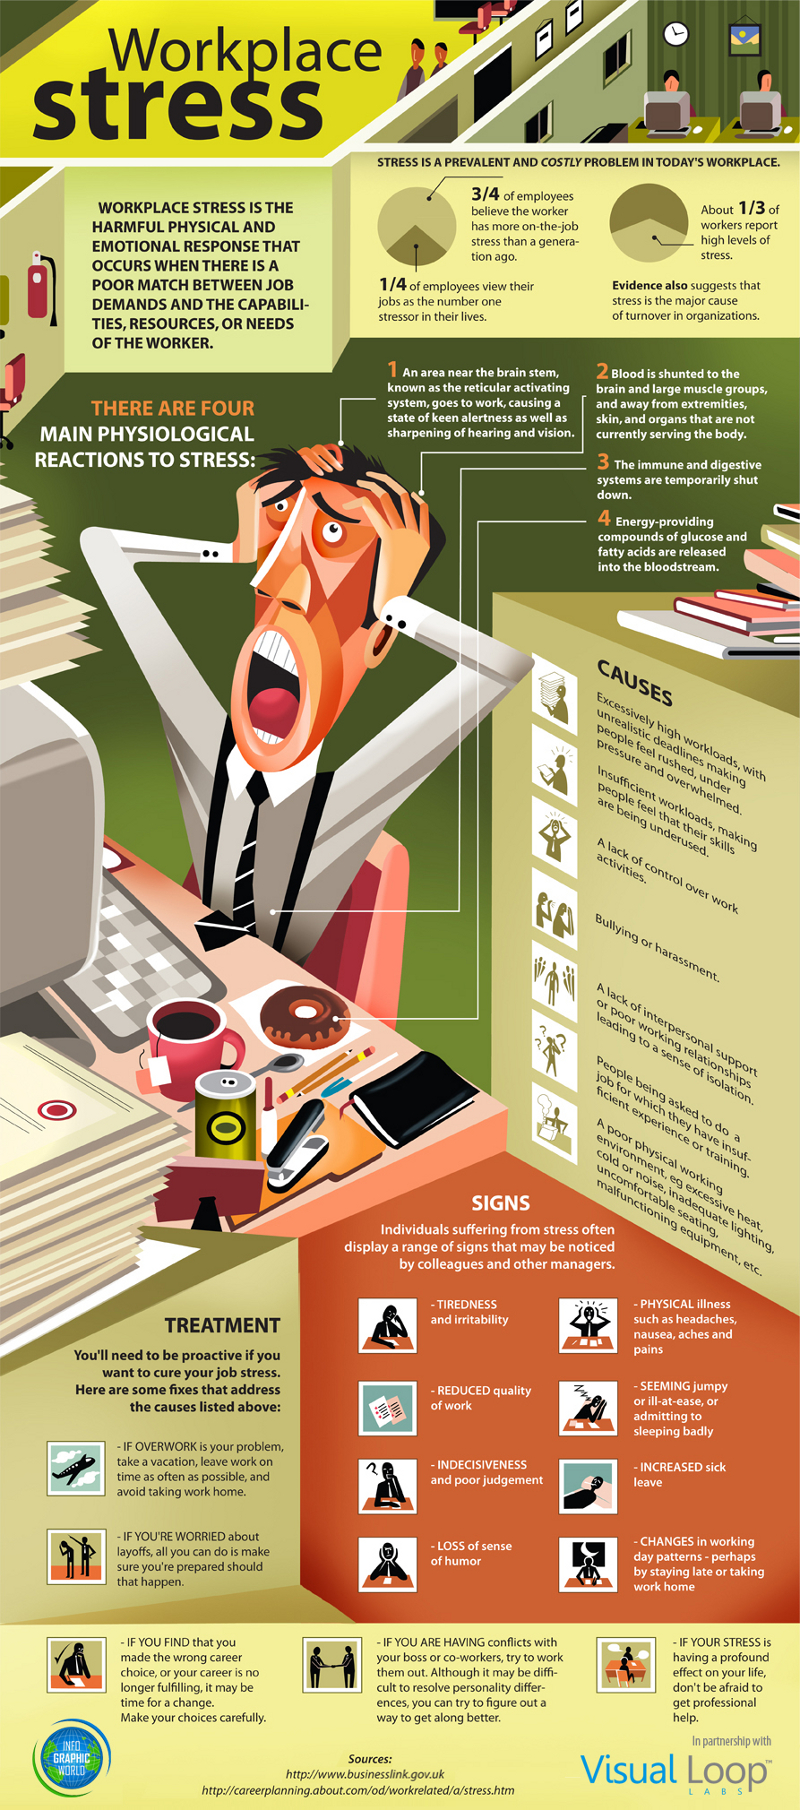 Causes-of-Wordplace-Stress